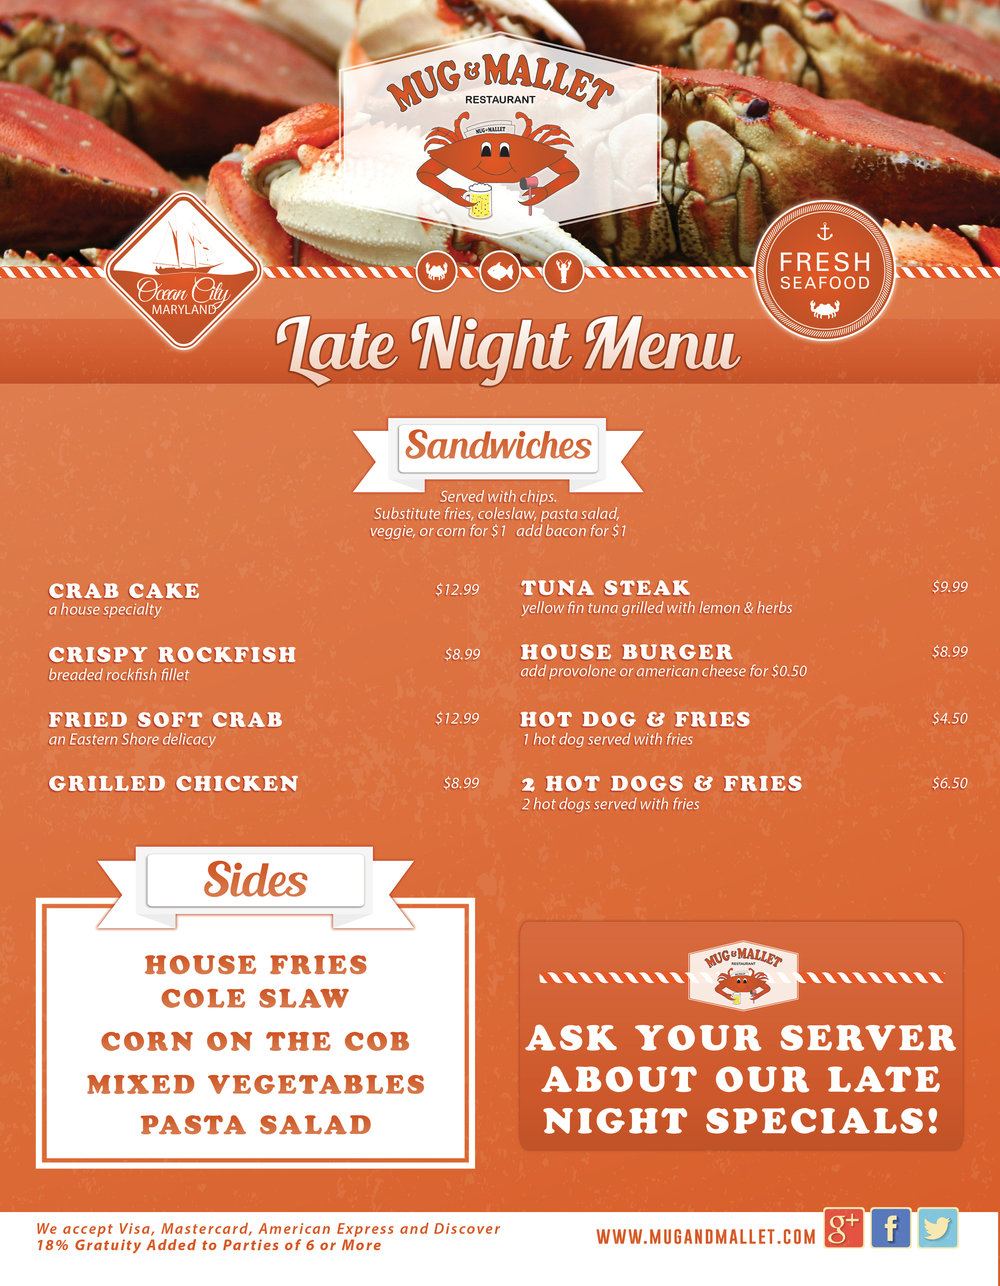 Late-Night-Menu-Back-Mar29.jpg